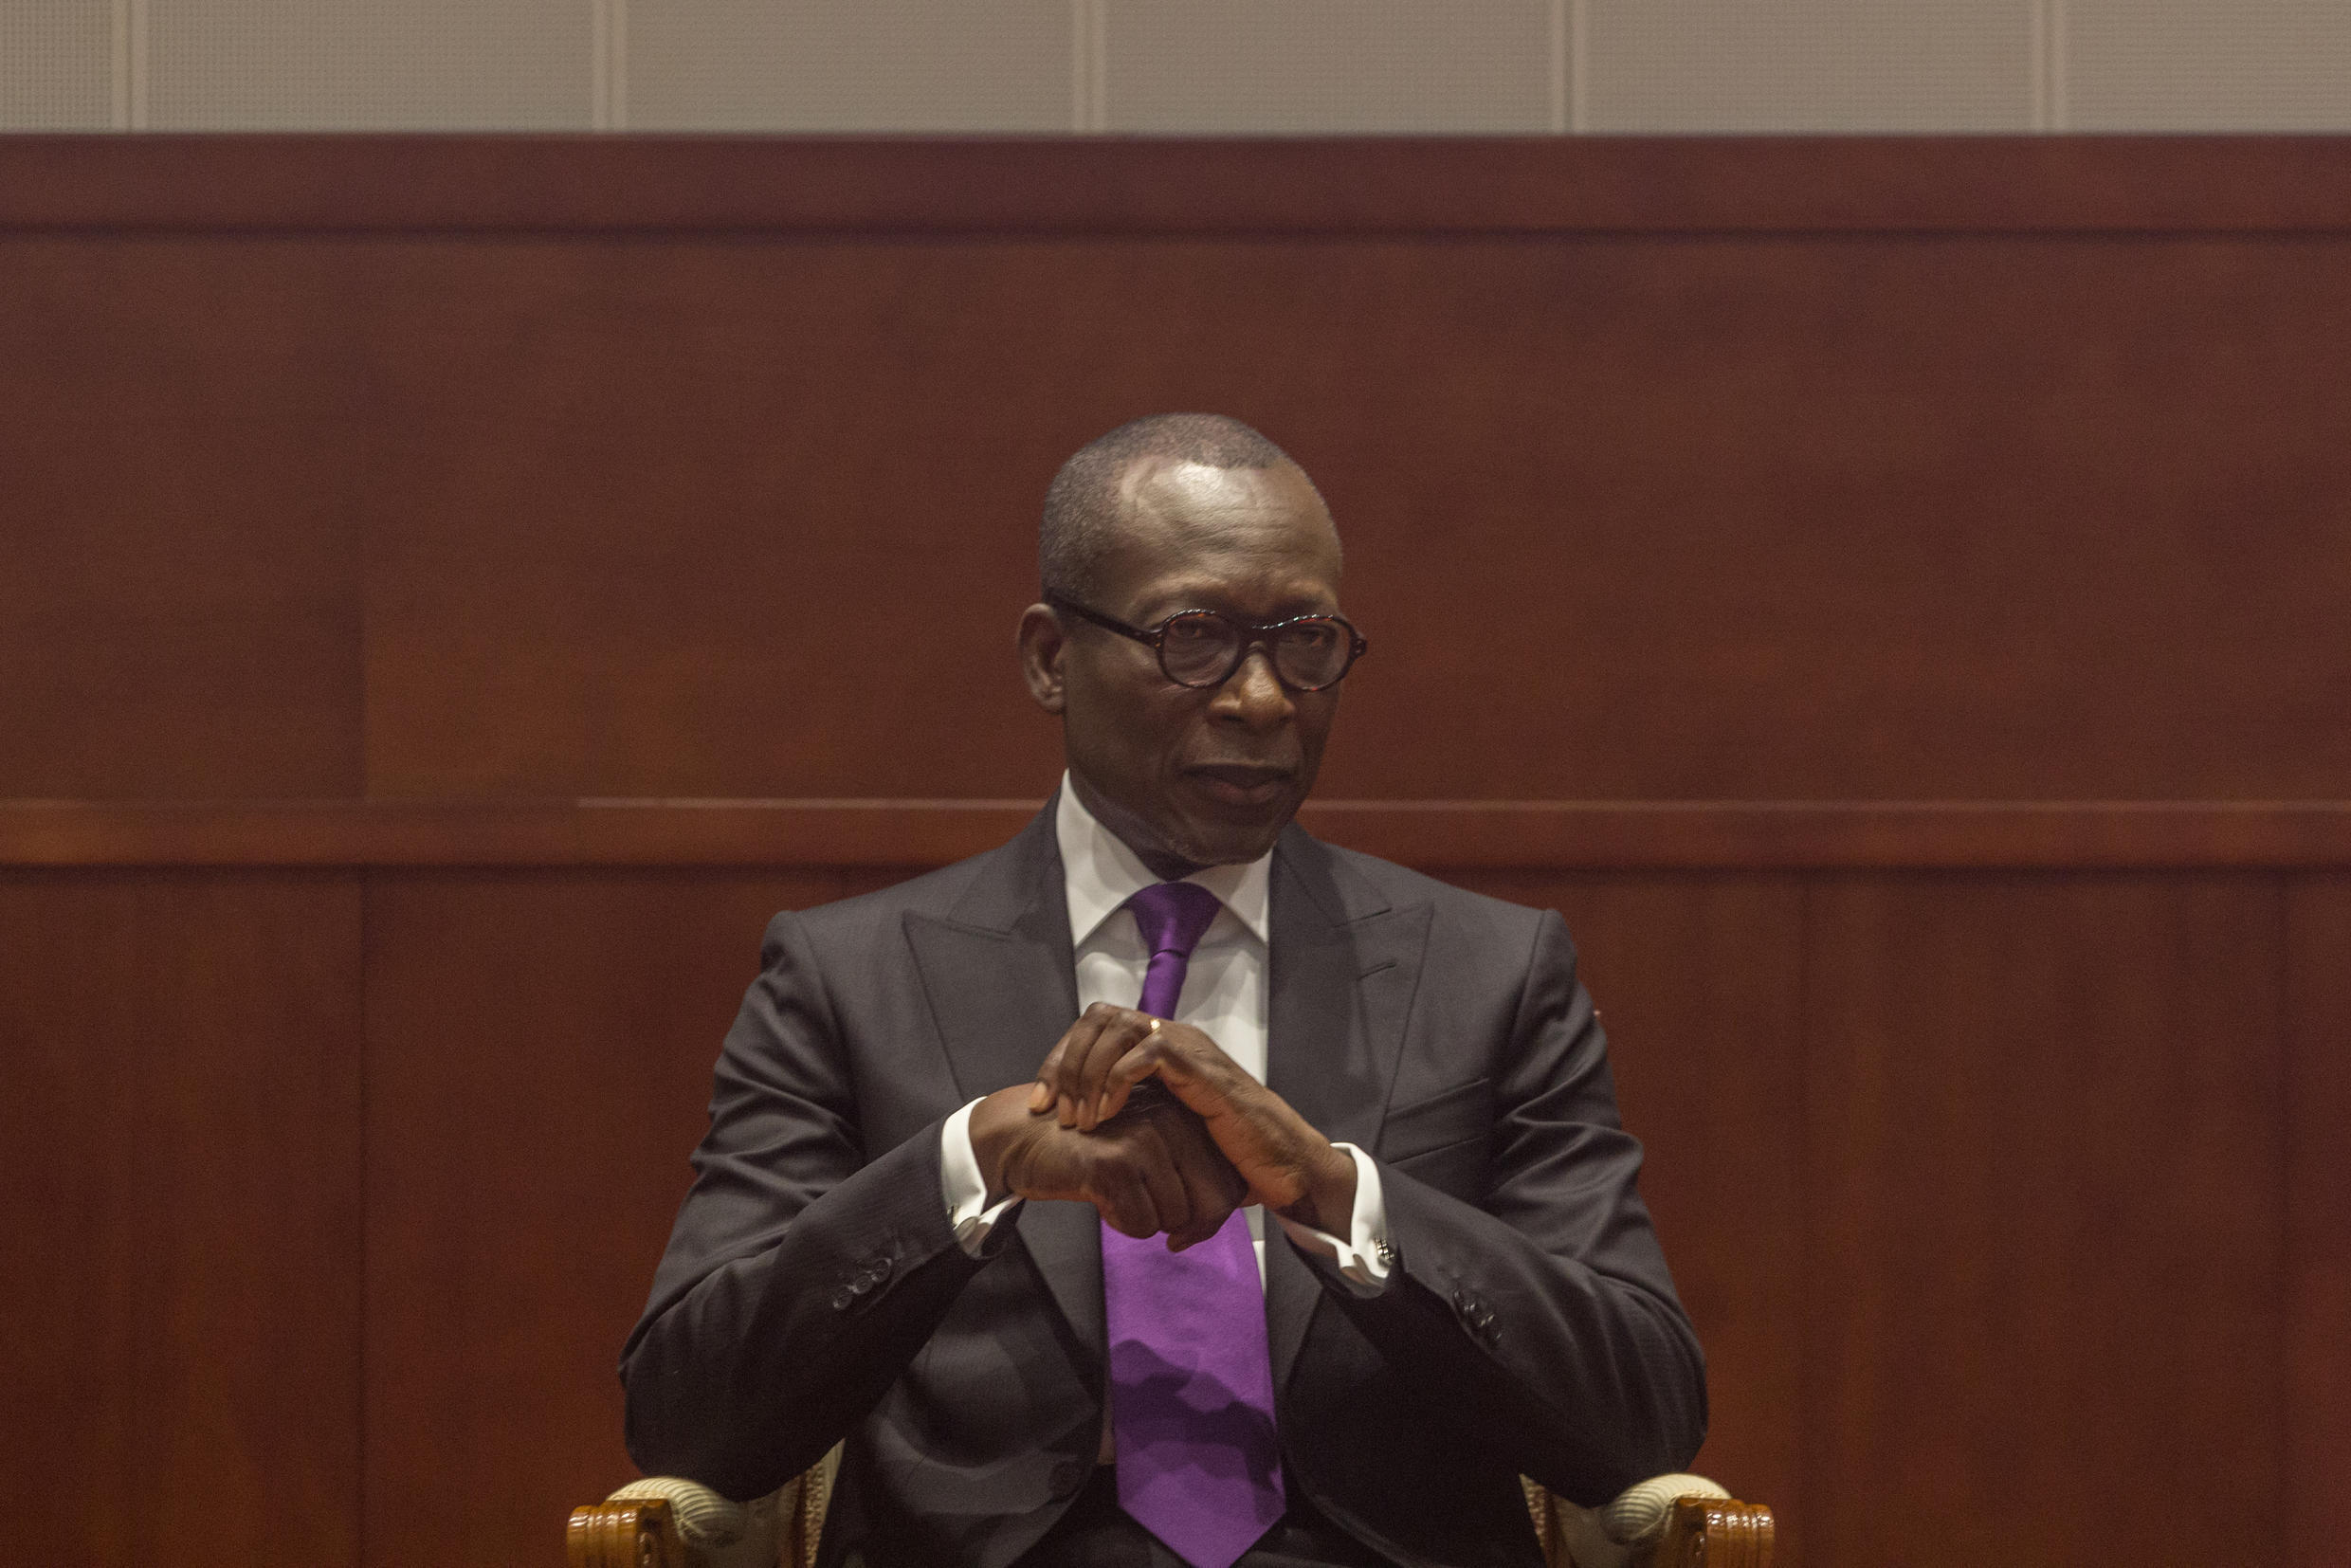 Since business magnate Patrice Talon became president of Benin in 2016, journalists and opponents have complained of increasing authoritarianism